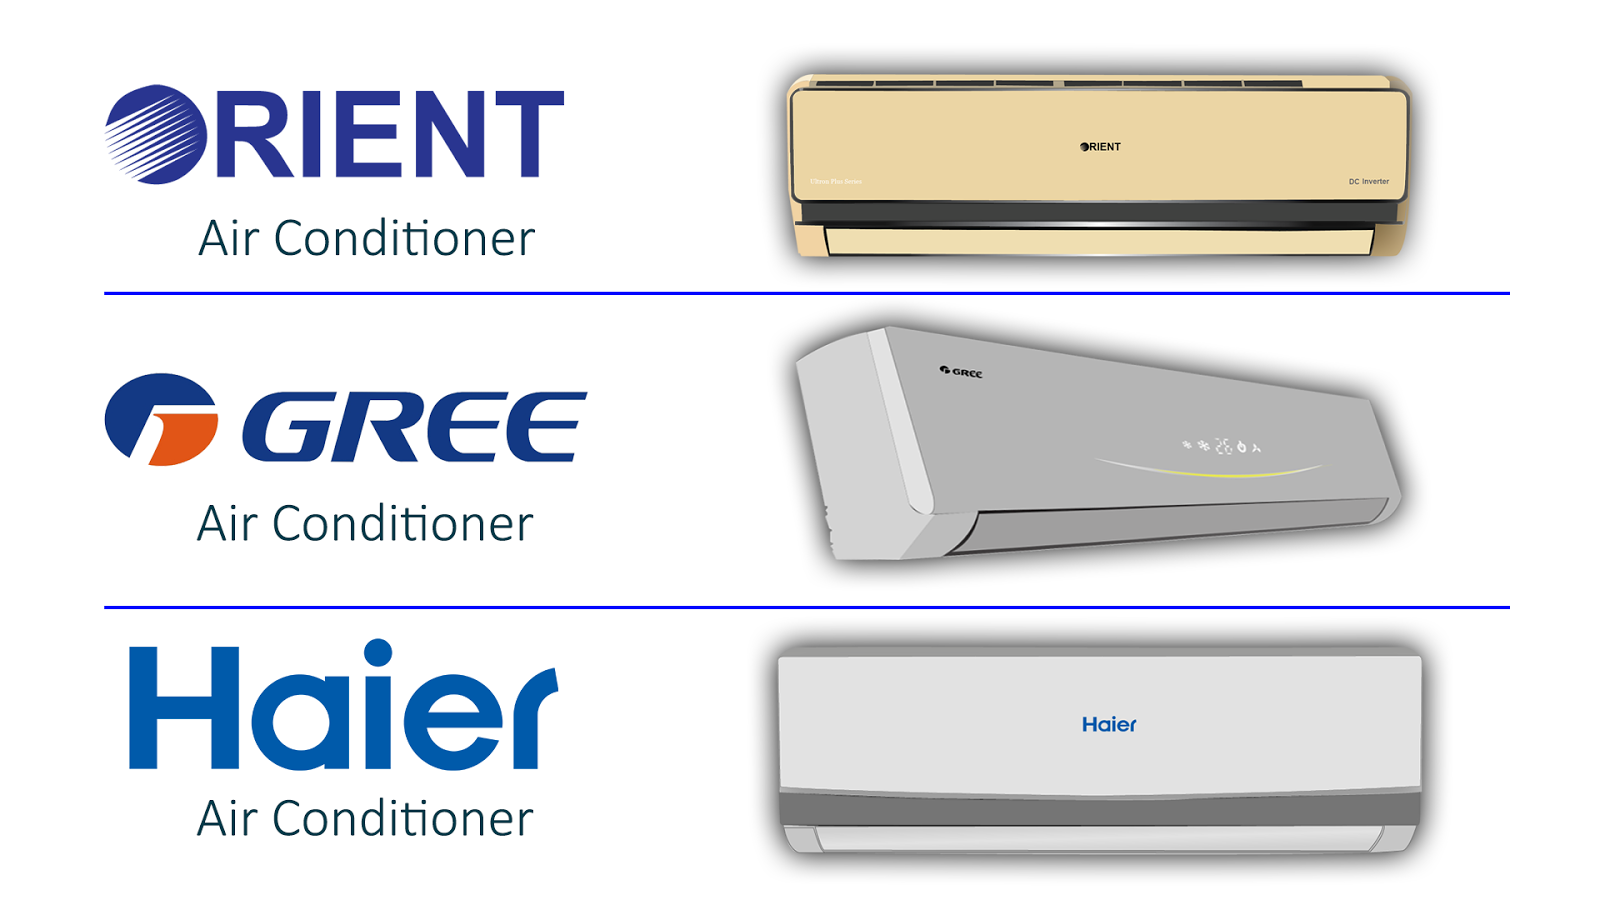 #105BA4 Top 5 Best Air Conditioner To Buy In Pakistan Top5ver Reliable 14638 What Air Conditioner Is The Best wallpaper with 1600x900 px on helpvideos.info - Air Conditioners, Air Coolers and more